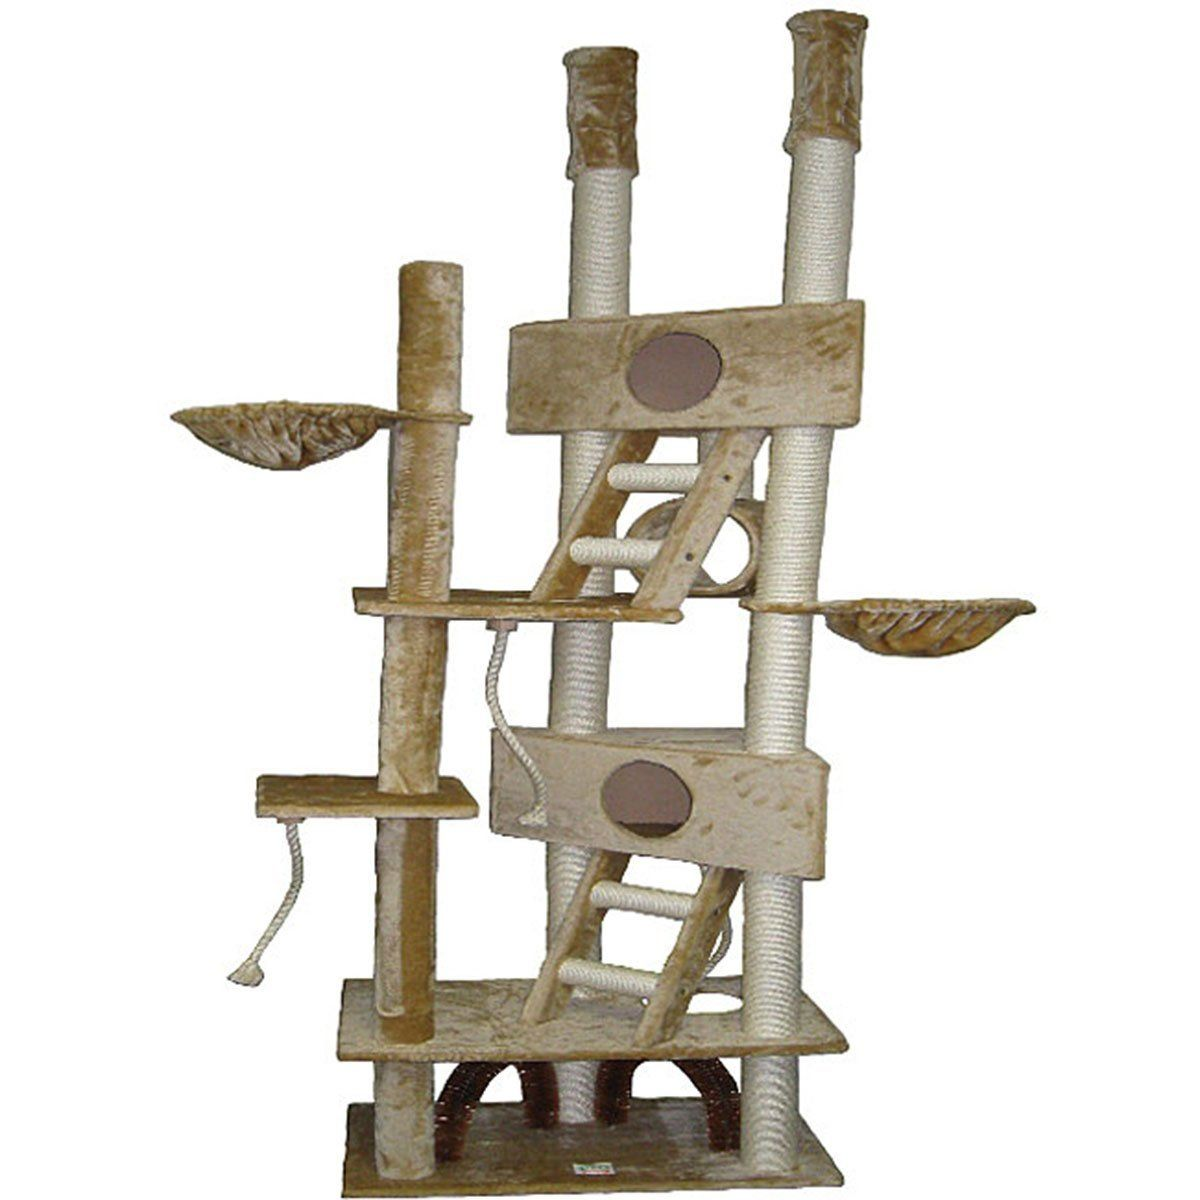 The Gocatclub Scratcher 106 Inch Cat Tree Check This Awesome Image Cat Tree House Huge Cat Cat Tree Condo